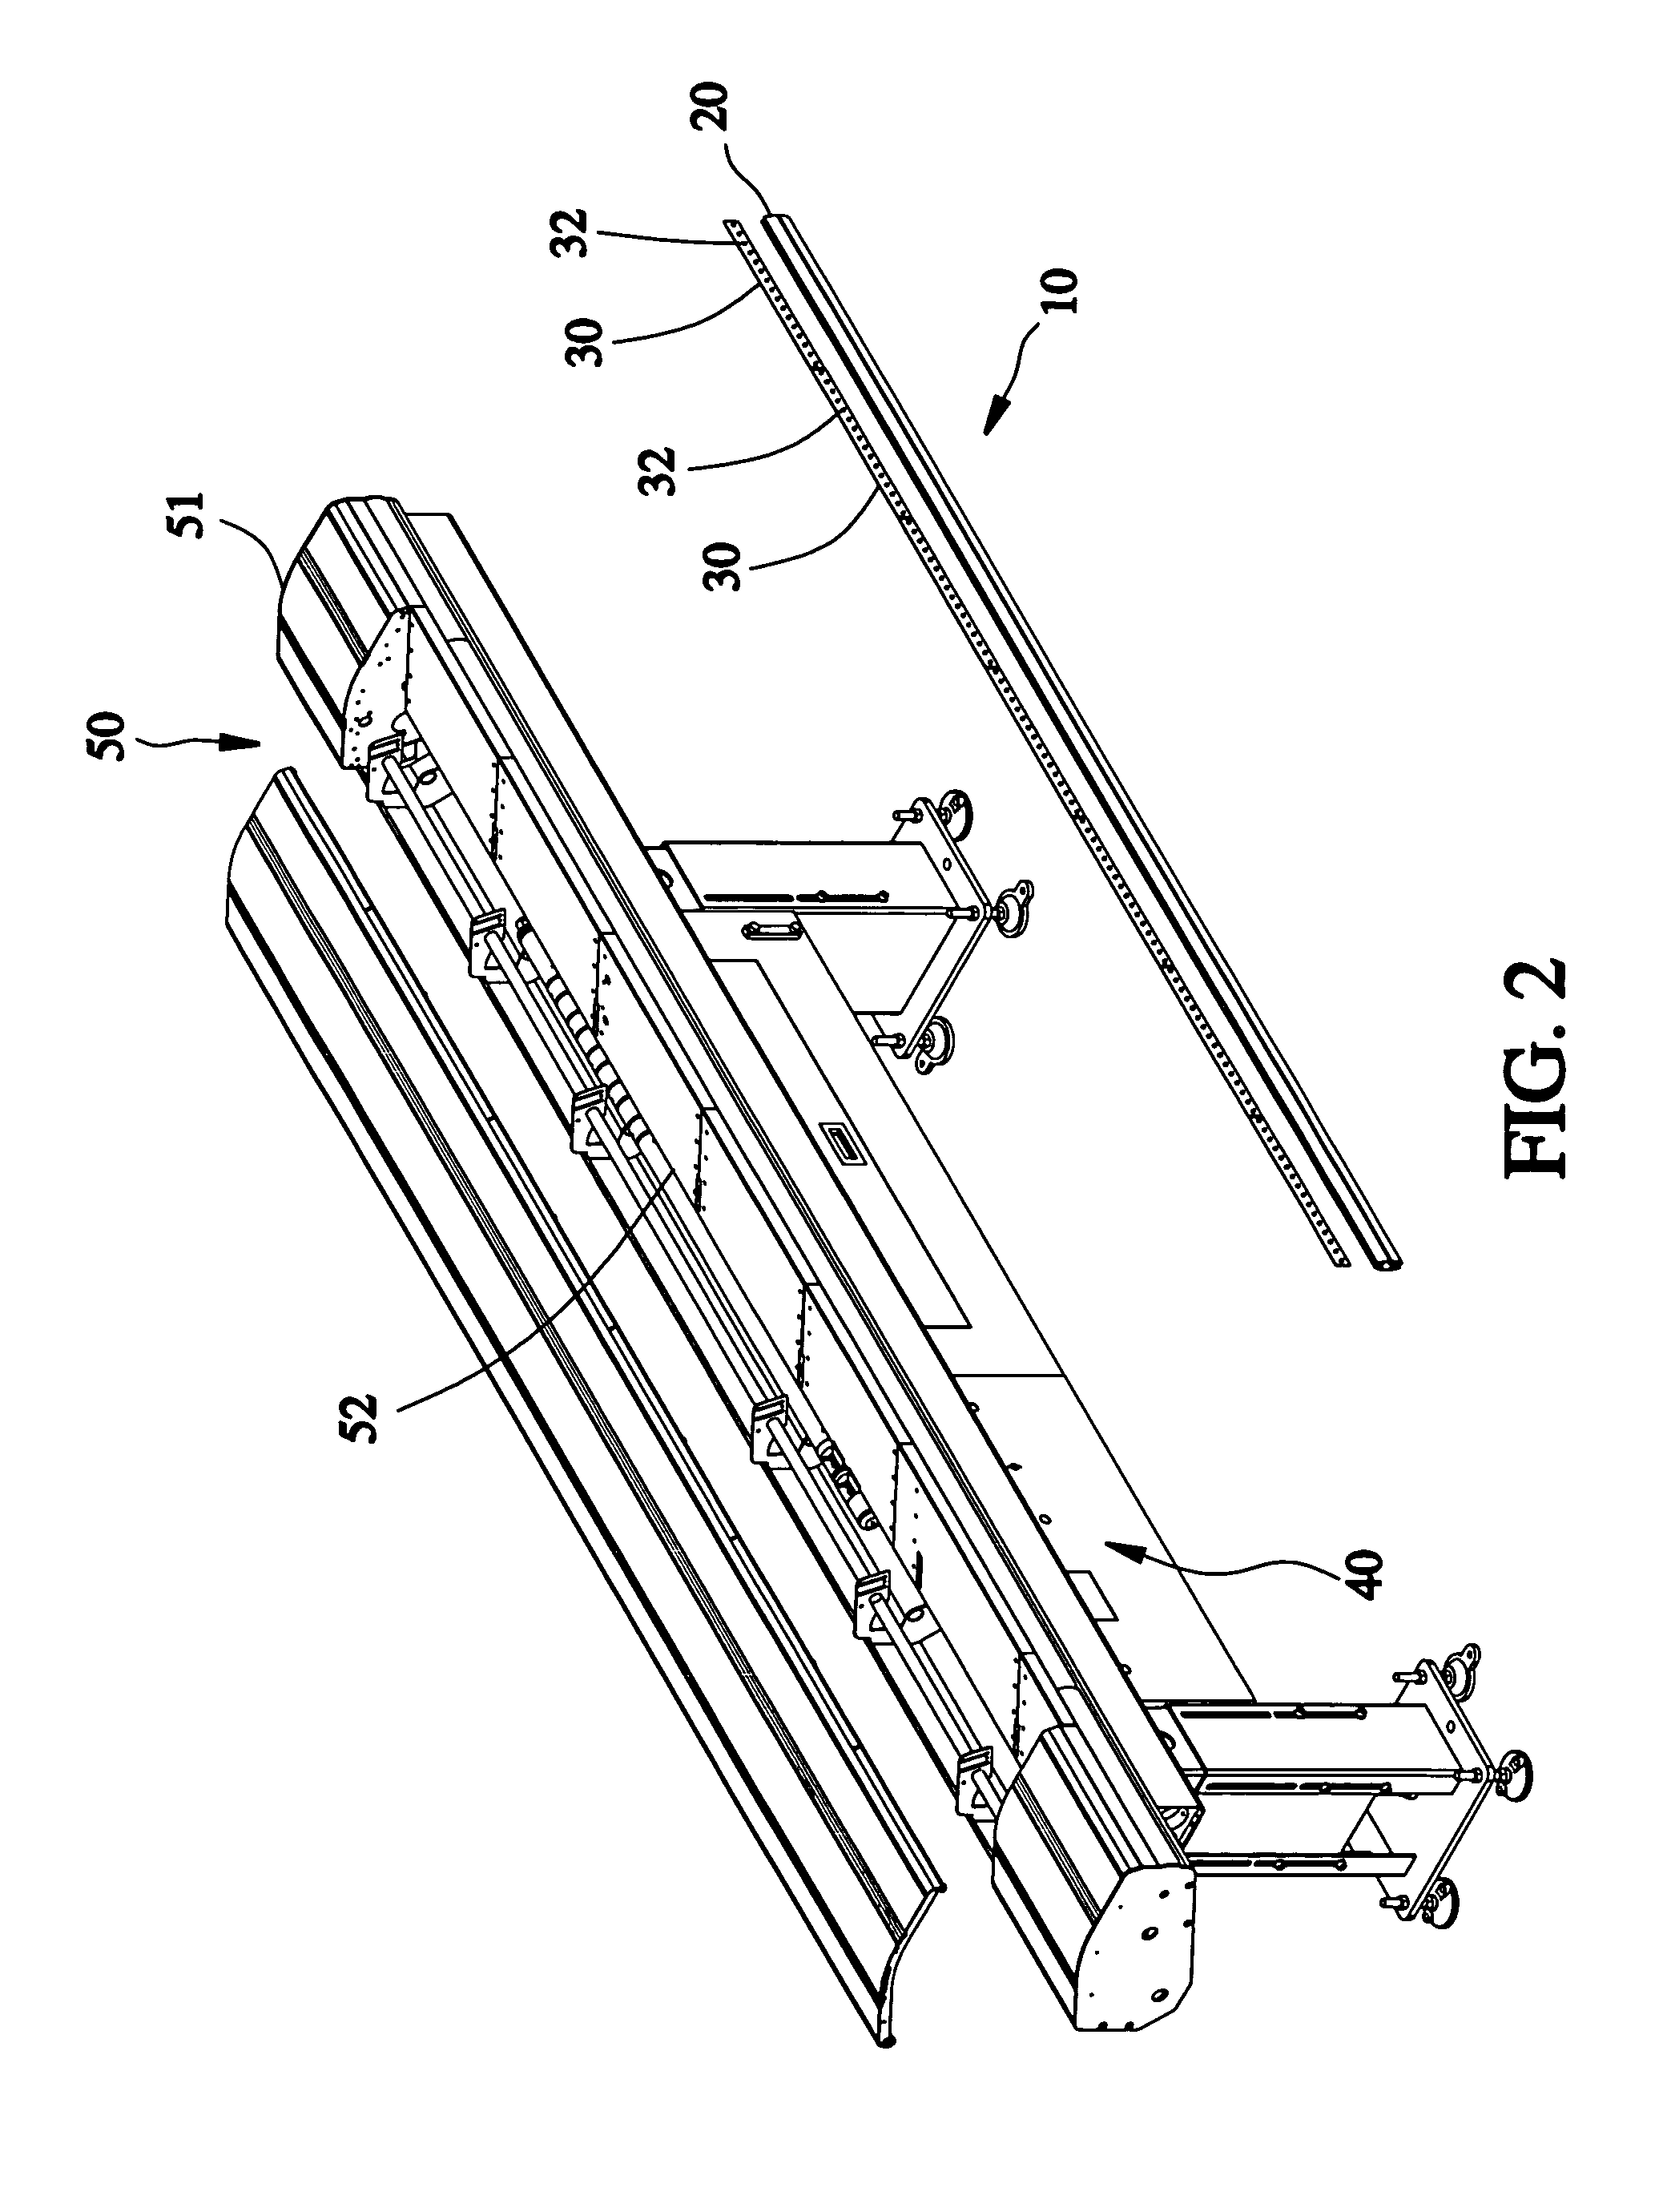 patent us7551097 - indicator device for machine